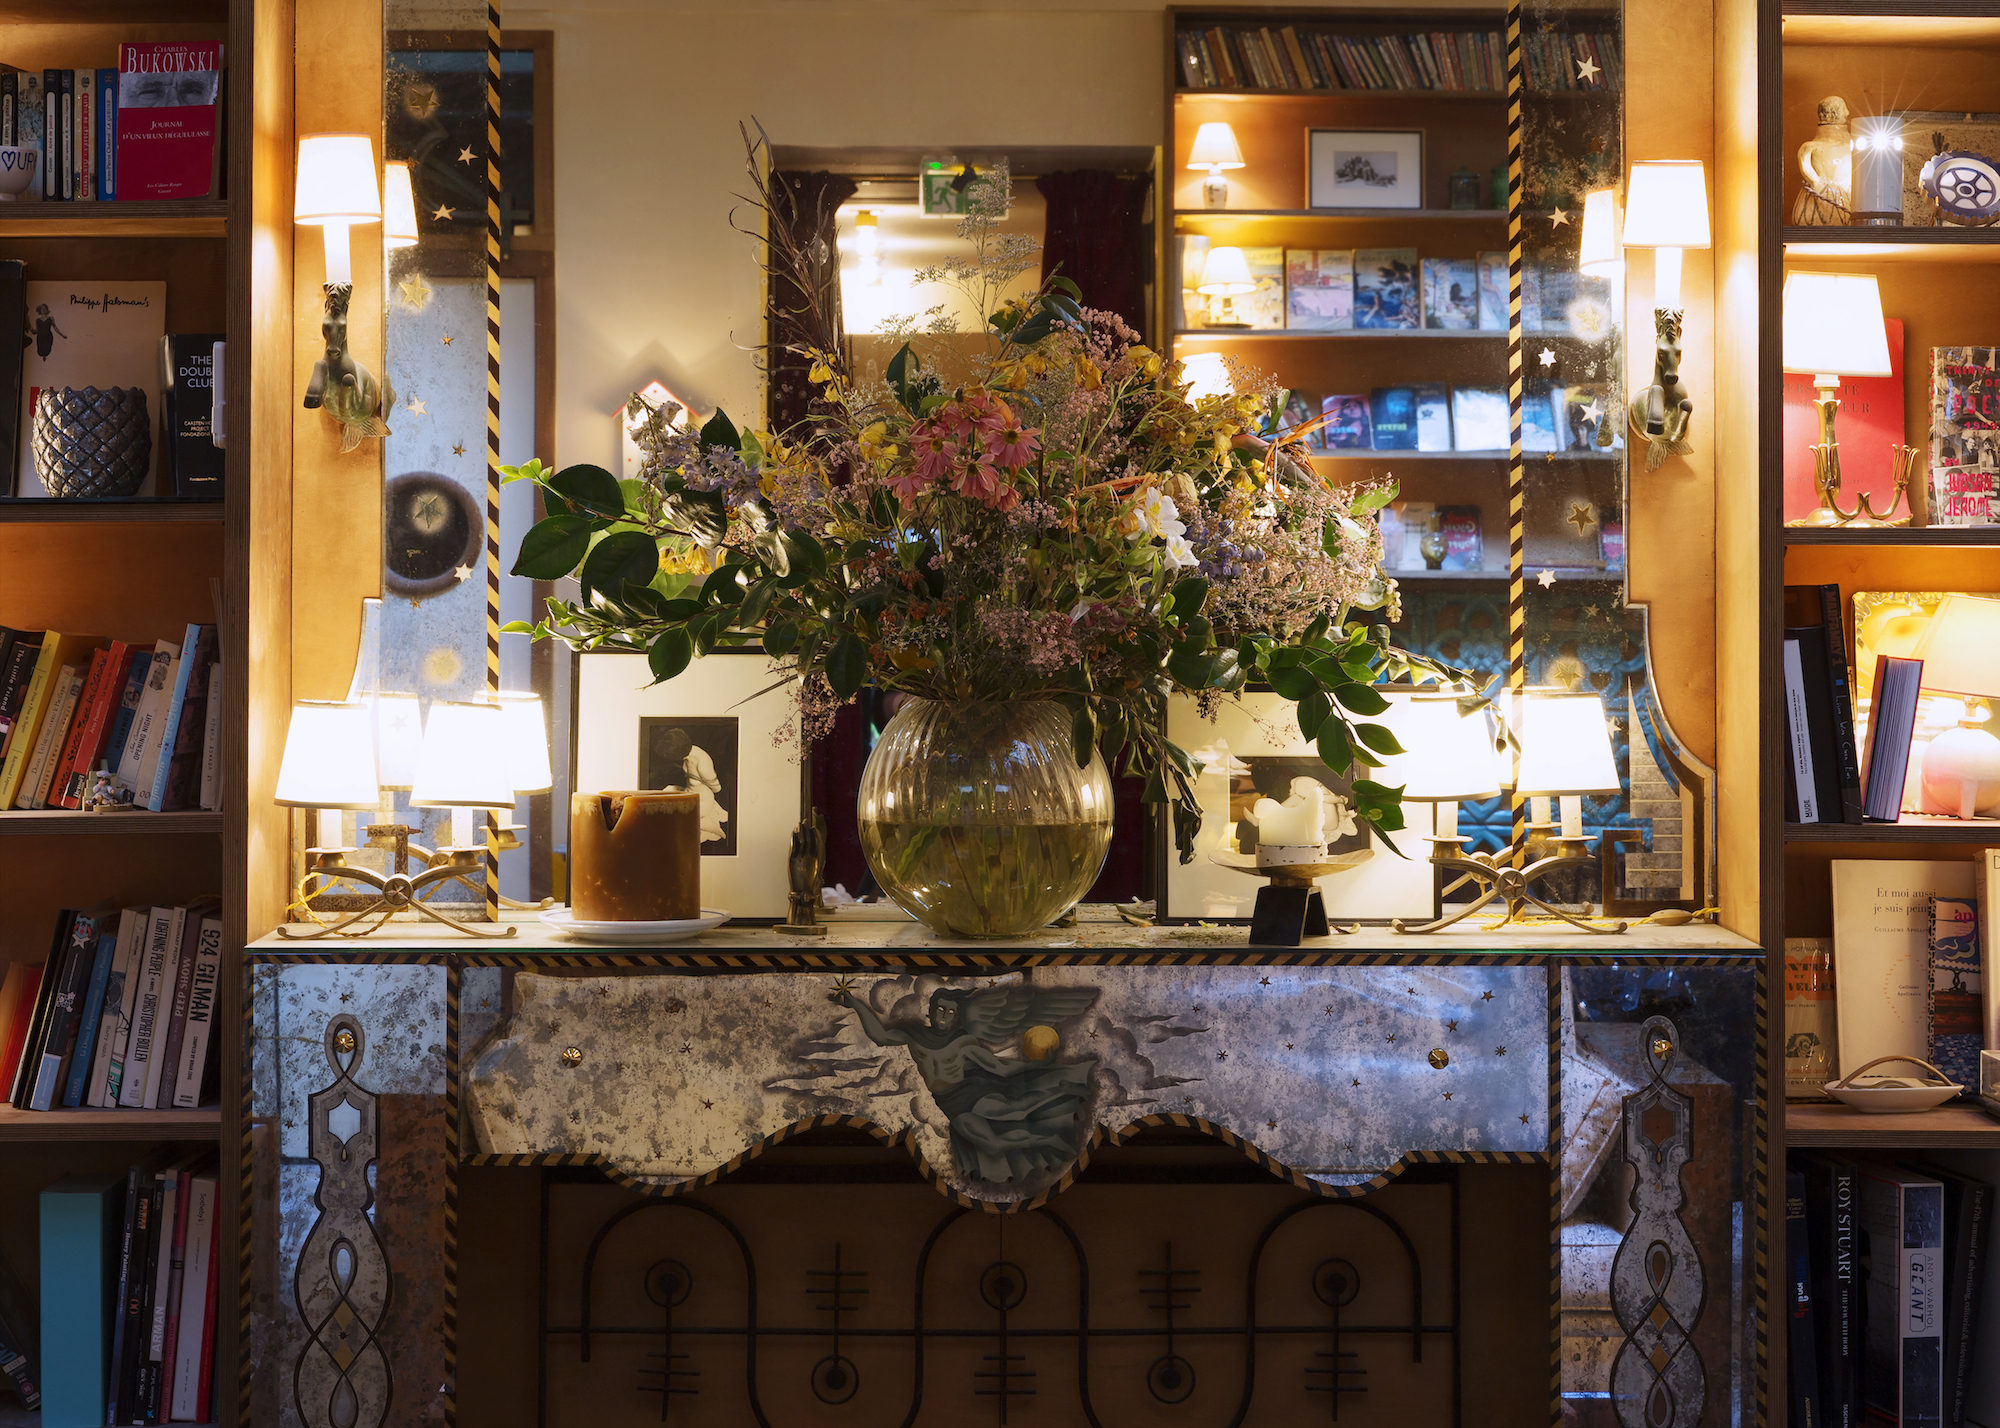 The bohemian salon of the Hôtel Grand Amour in Paris' 10th arrondissement welcomes guests to peruse its overflowing bookshelves and stand by the fire.